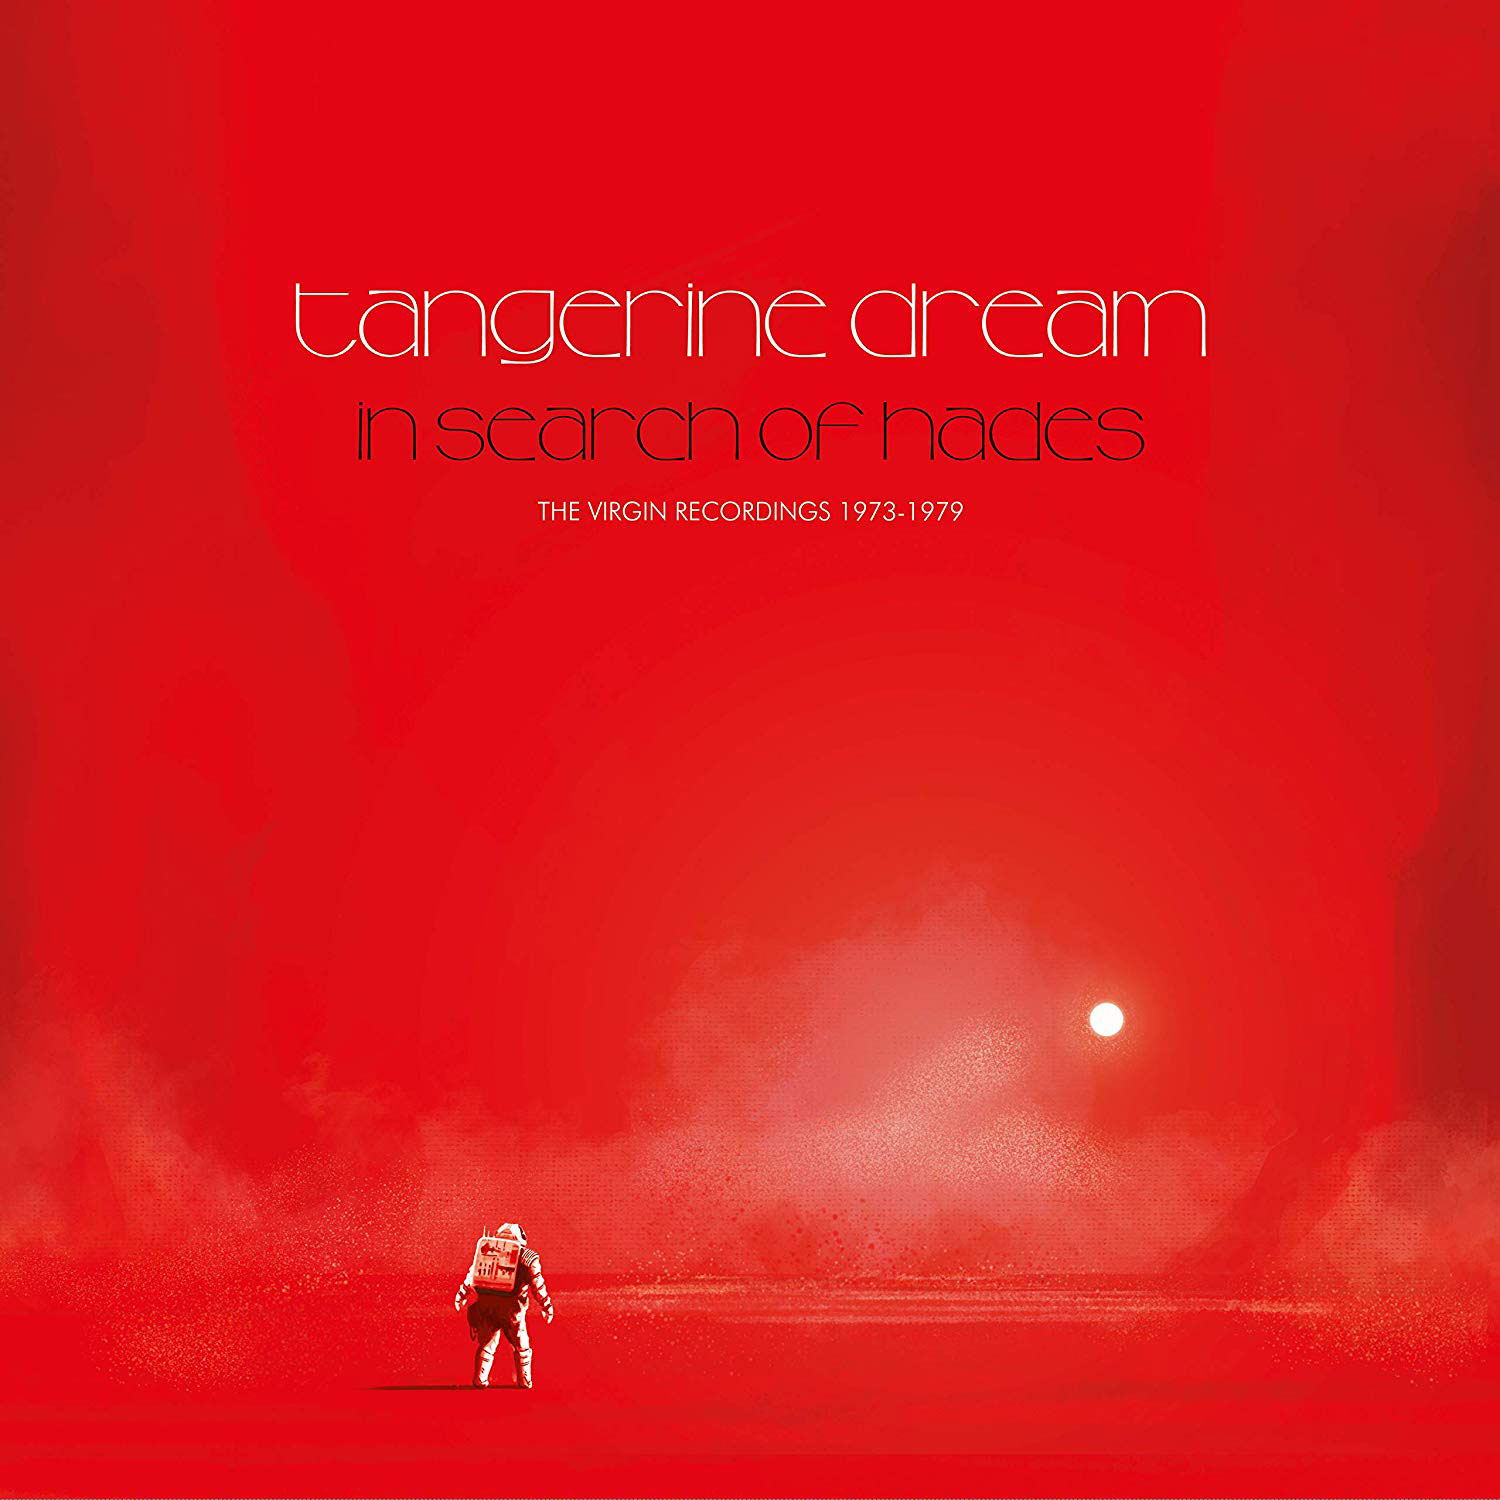 Tangerine Dream - In Search Of Hades: The Virgin Recordings 1973-1979 (2019) [16CD + 2 Blu-ray Box Set]